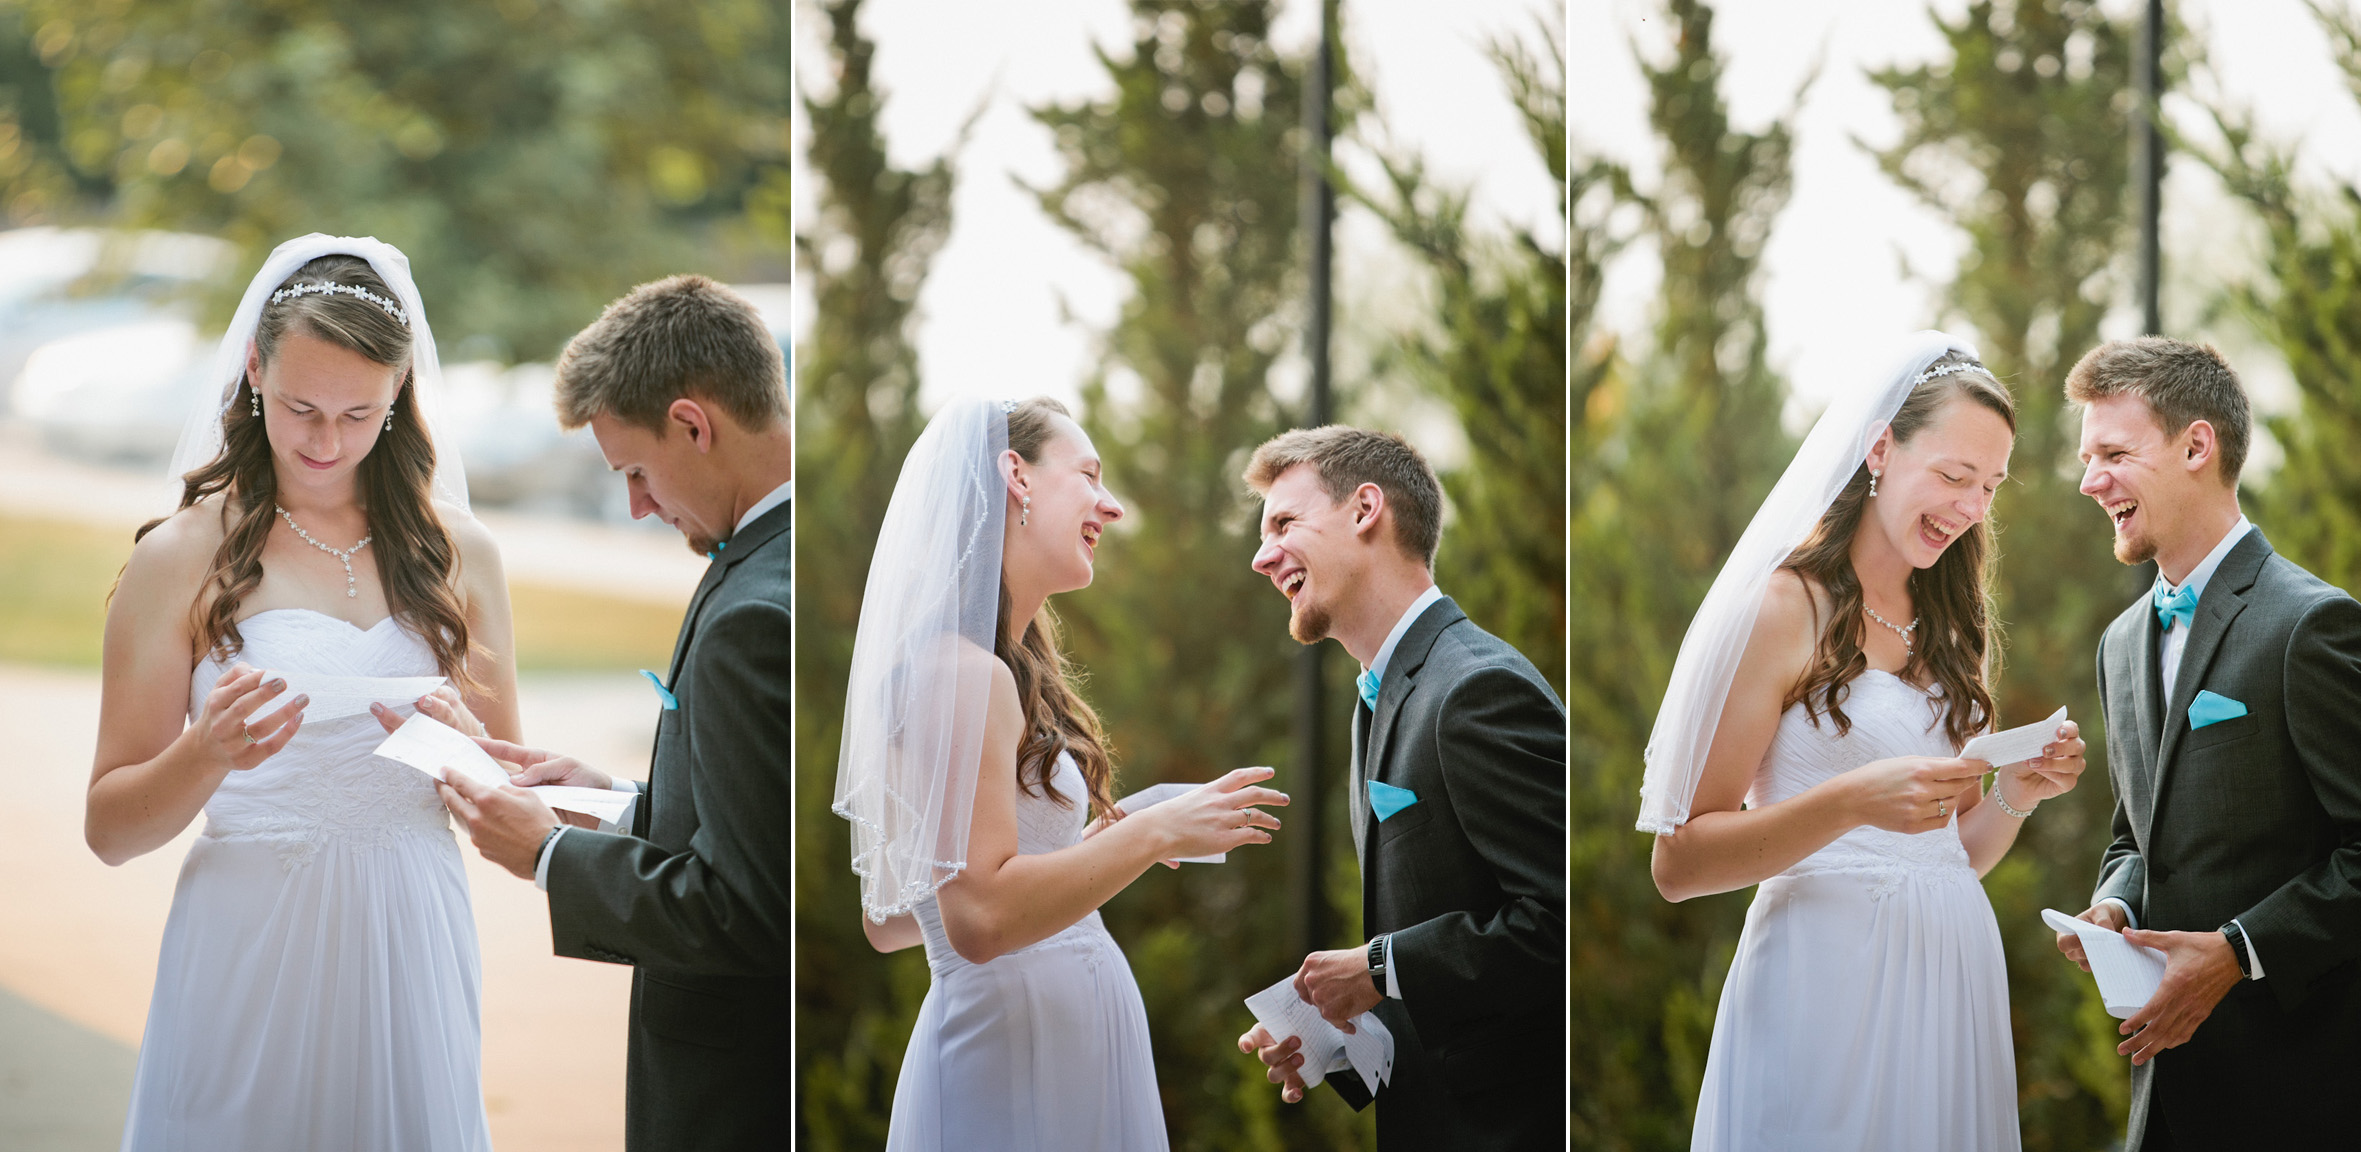 amazing first look Iowa wedding photography Des Moines